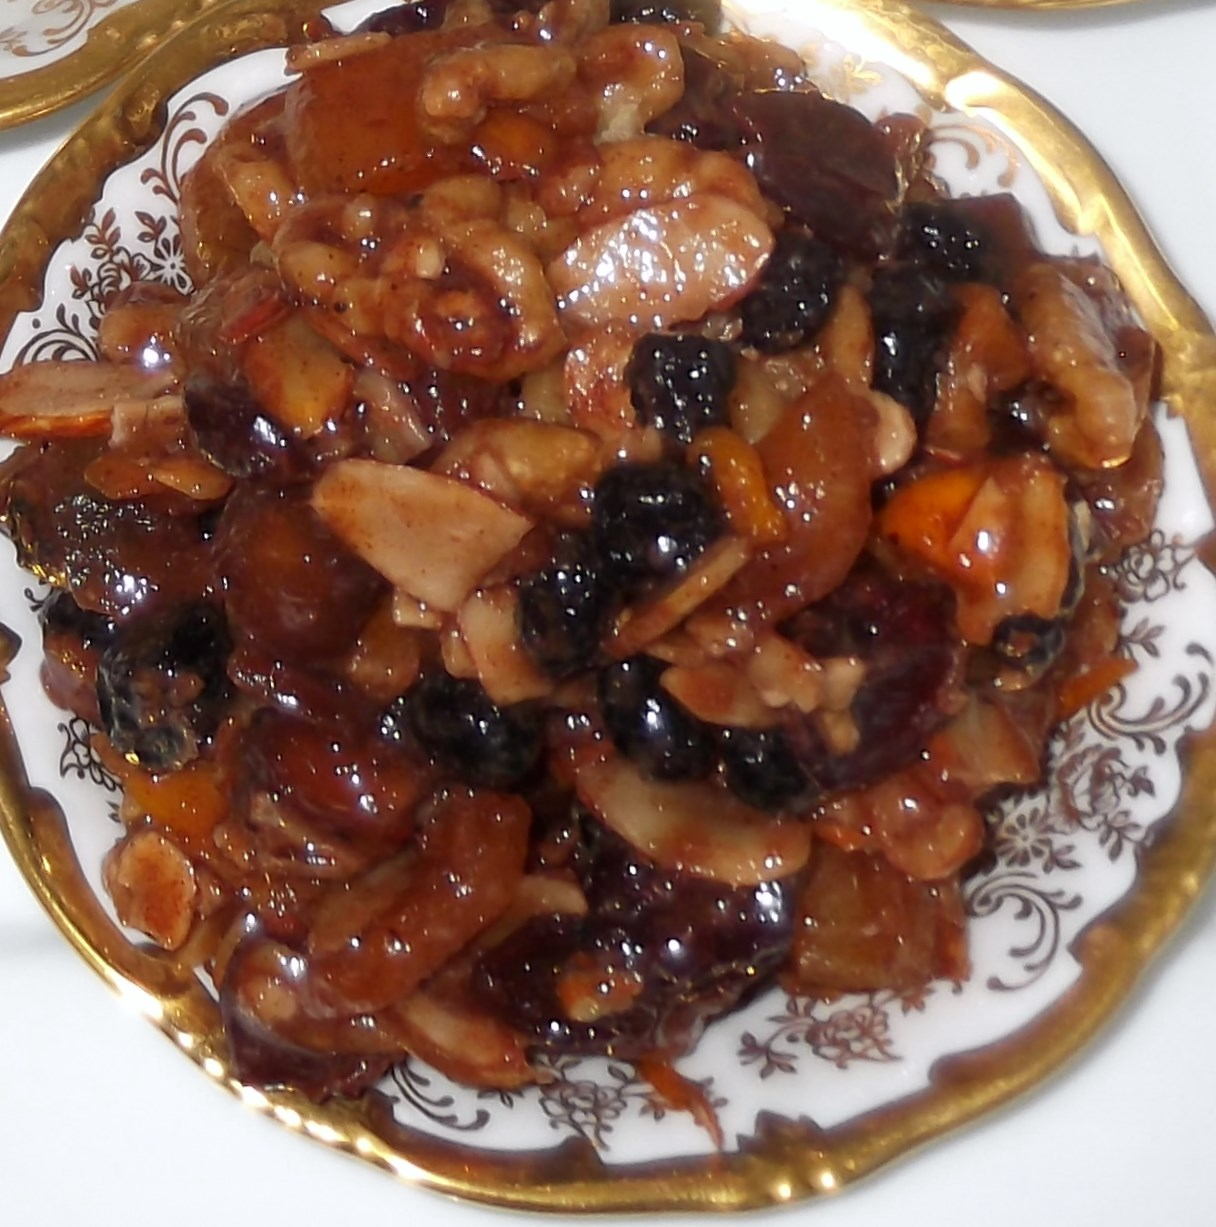 ... year at Passover, I enjoy making this charoset for my seder plate